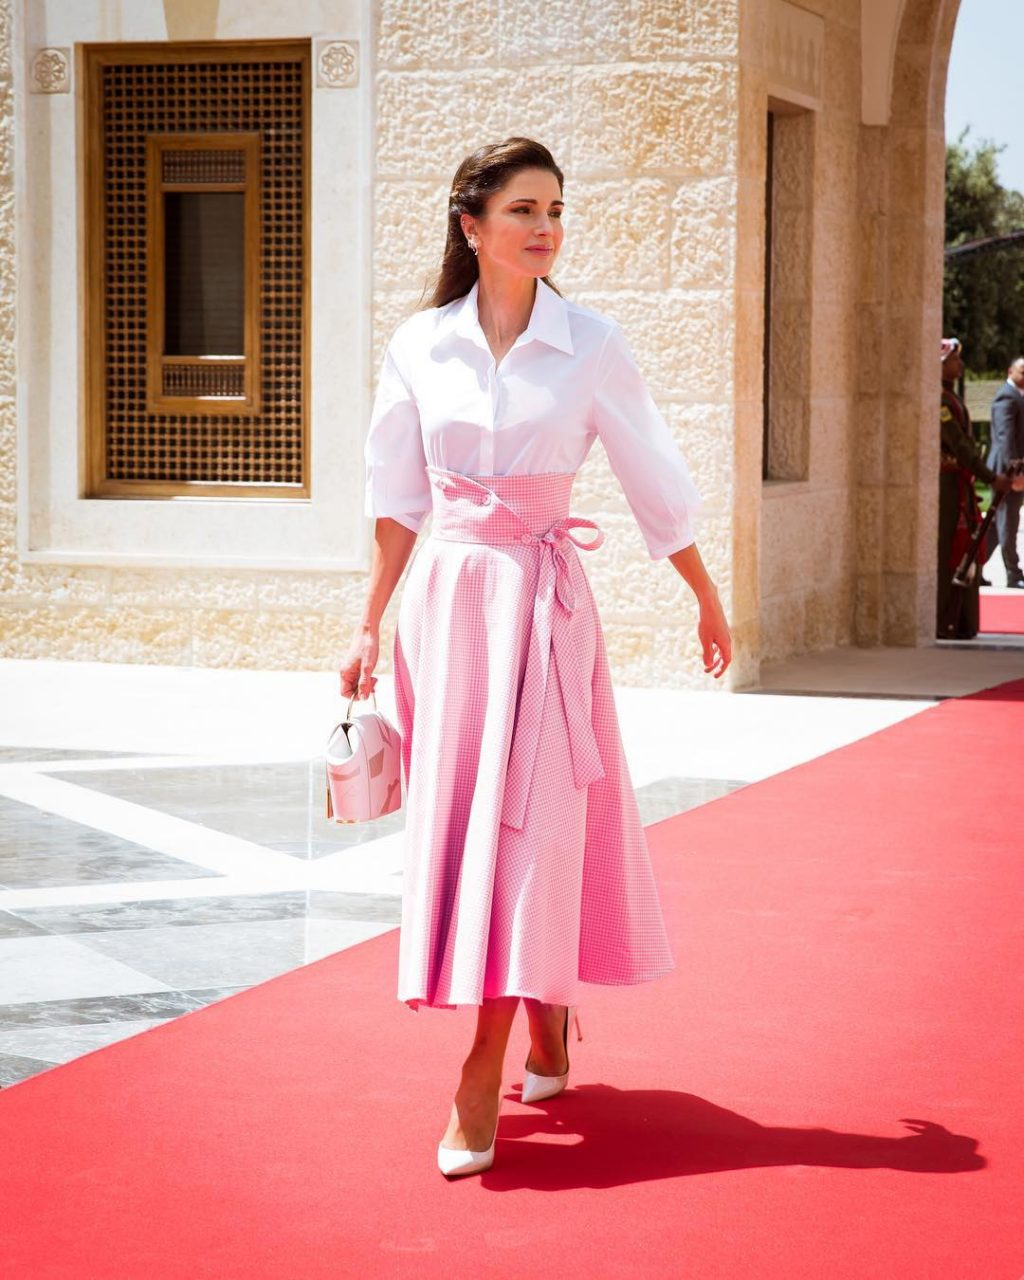 #WCW: Celebrating the Life, Style, and Achievements of Queen Rania